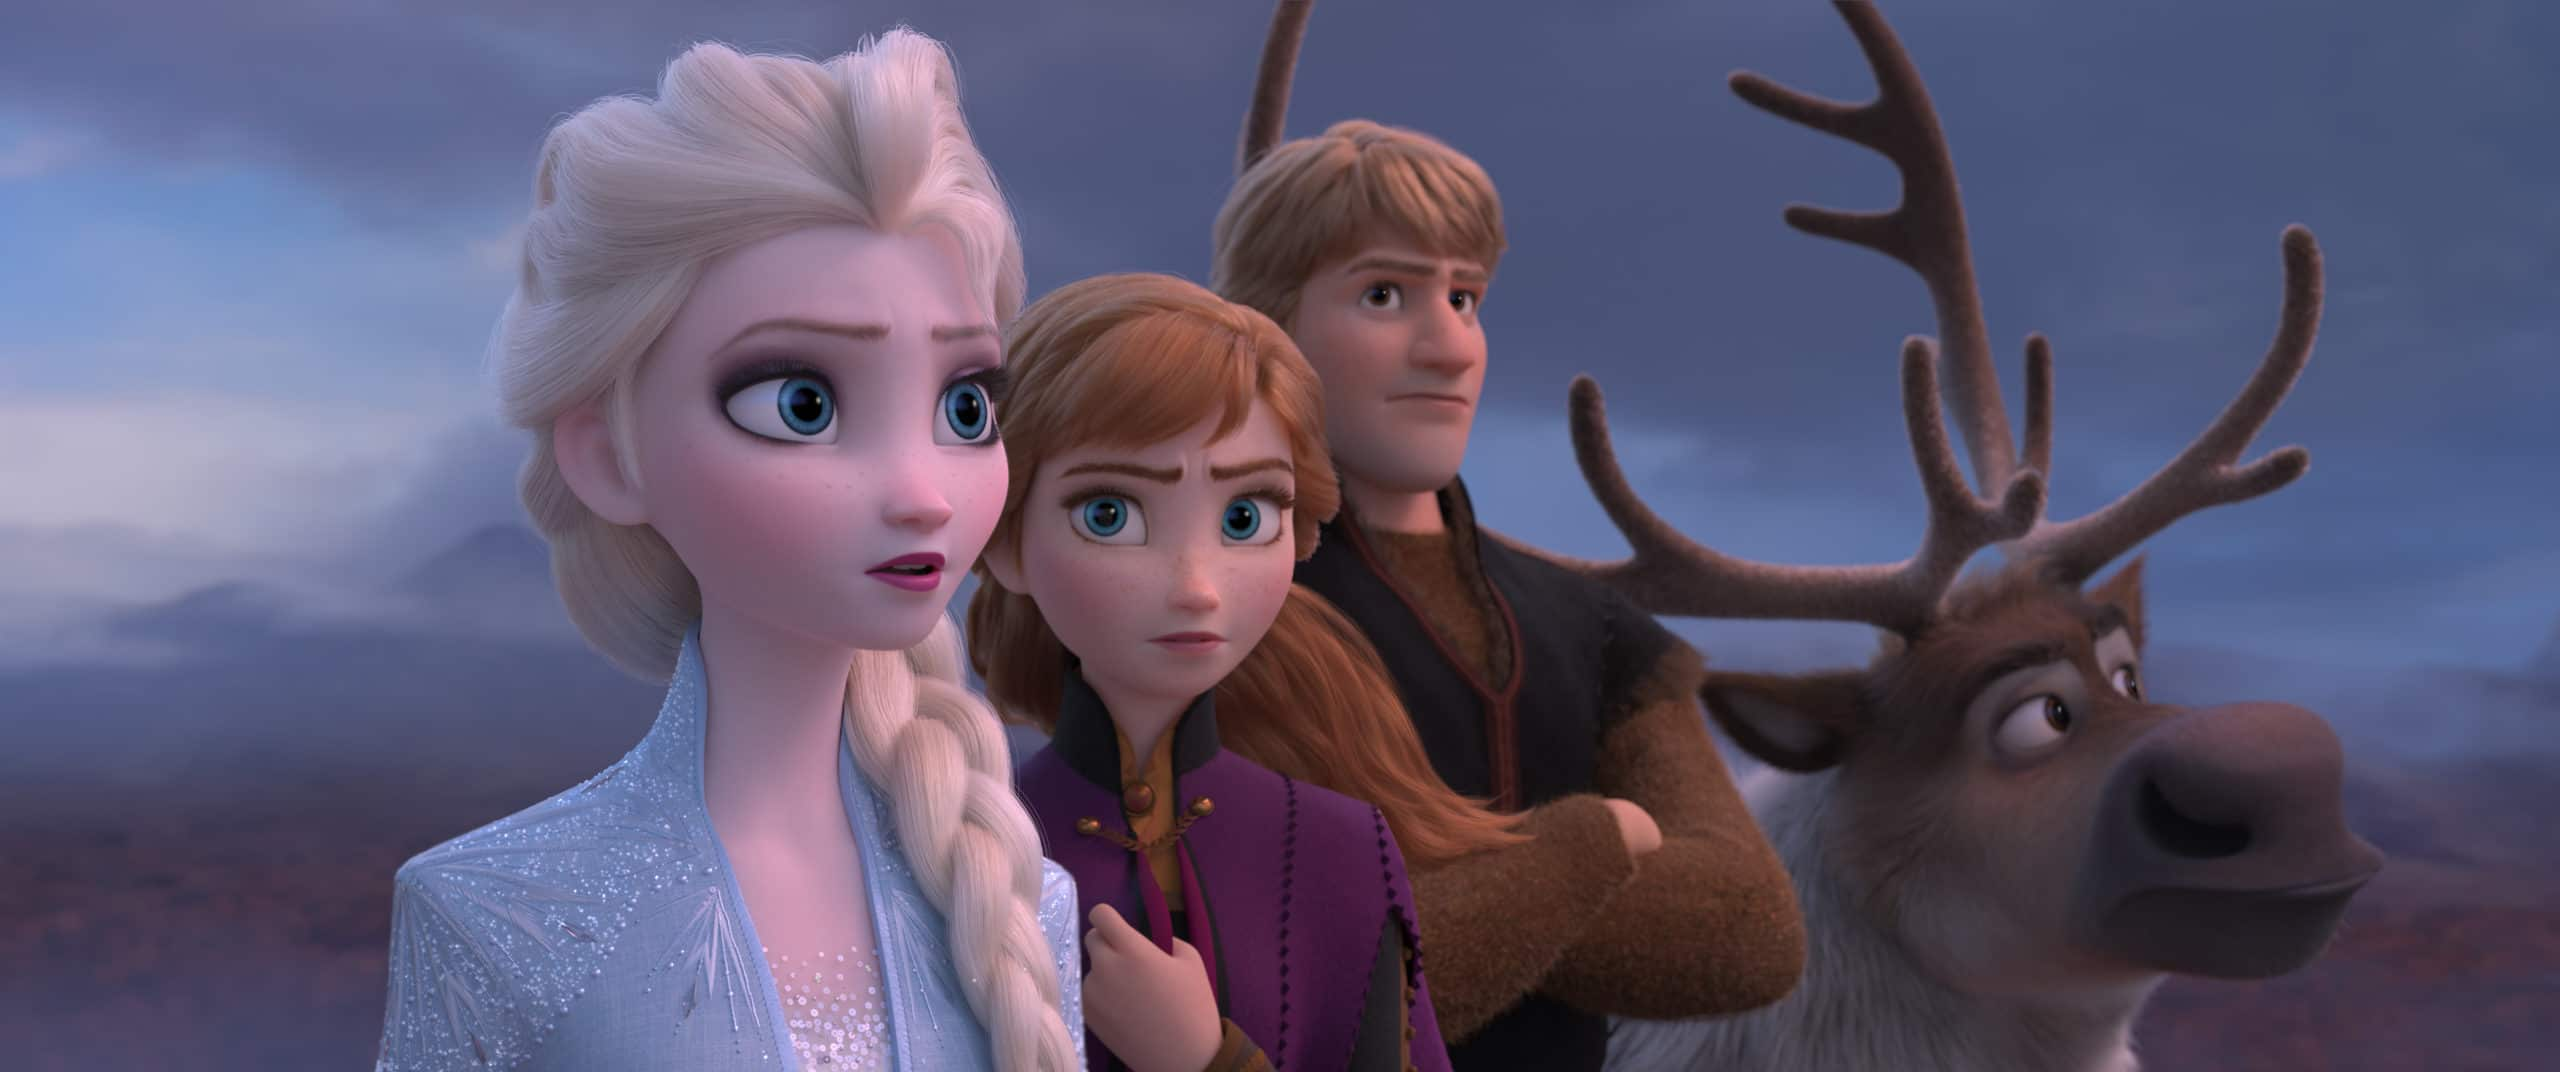 """From the Academy Award®-winning team—directors Jennifer Lee and Chris Buck, and producer Peter Del Vecho—and featuring the voices of Idina Menzel, Kristen Bell, Jonathan Groff and Josh Gad, and the music of Oscar®-winning songwriters Kristen Anderson-Lopez and Robert Lopez, Walt Disney Animation Studios' """"Frozen 2"""" opens in U.S. theaters on Nov. 22, 2019."""